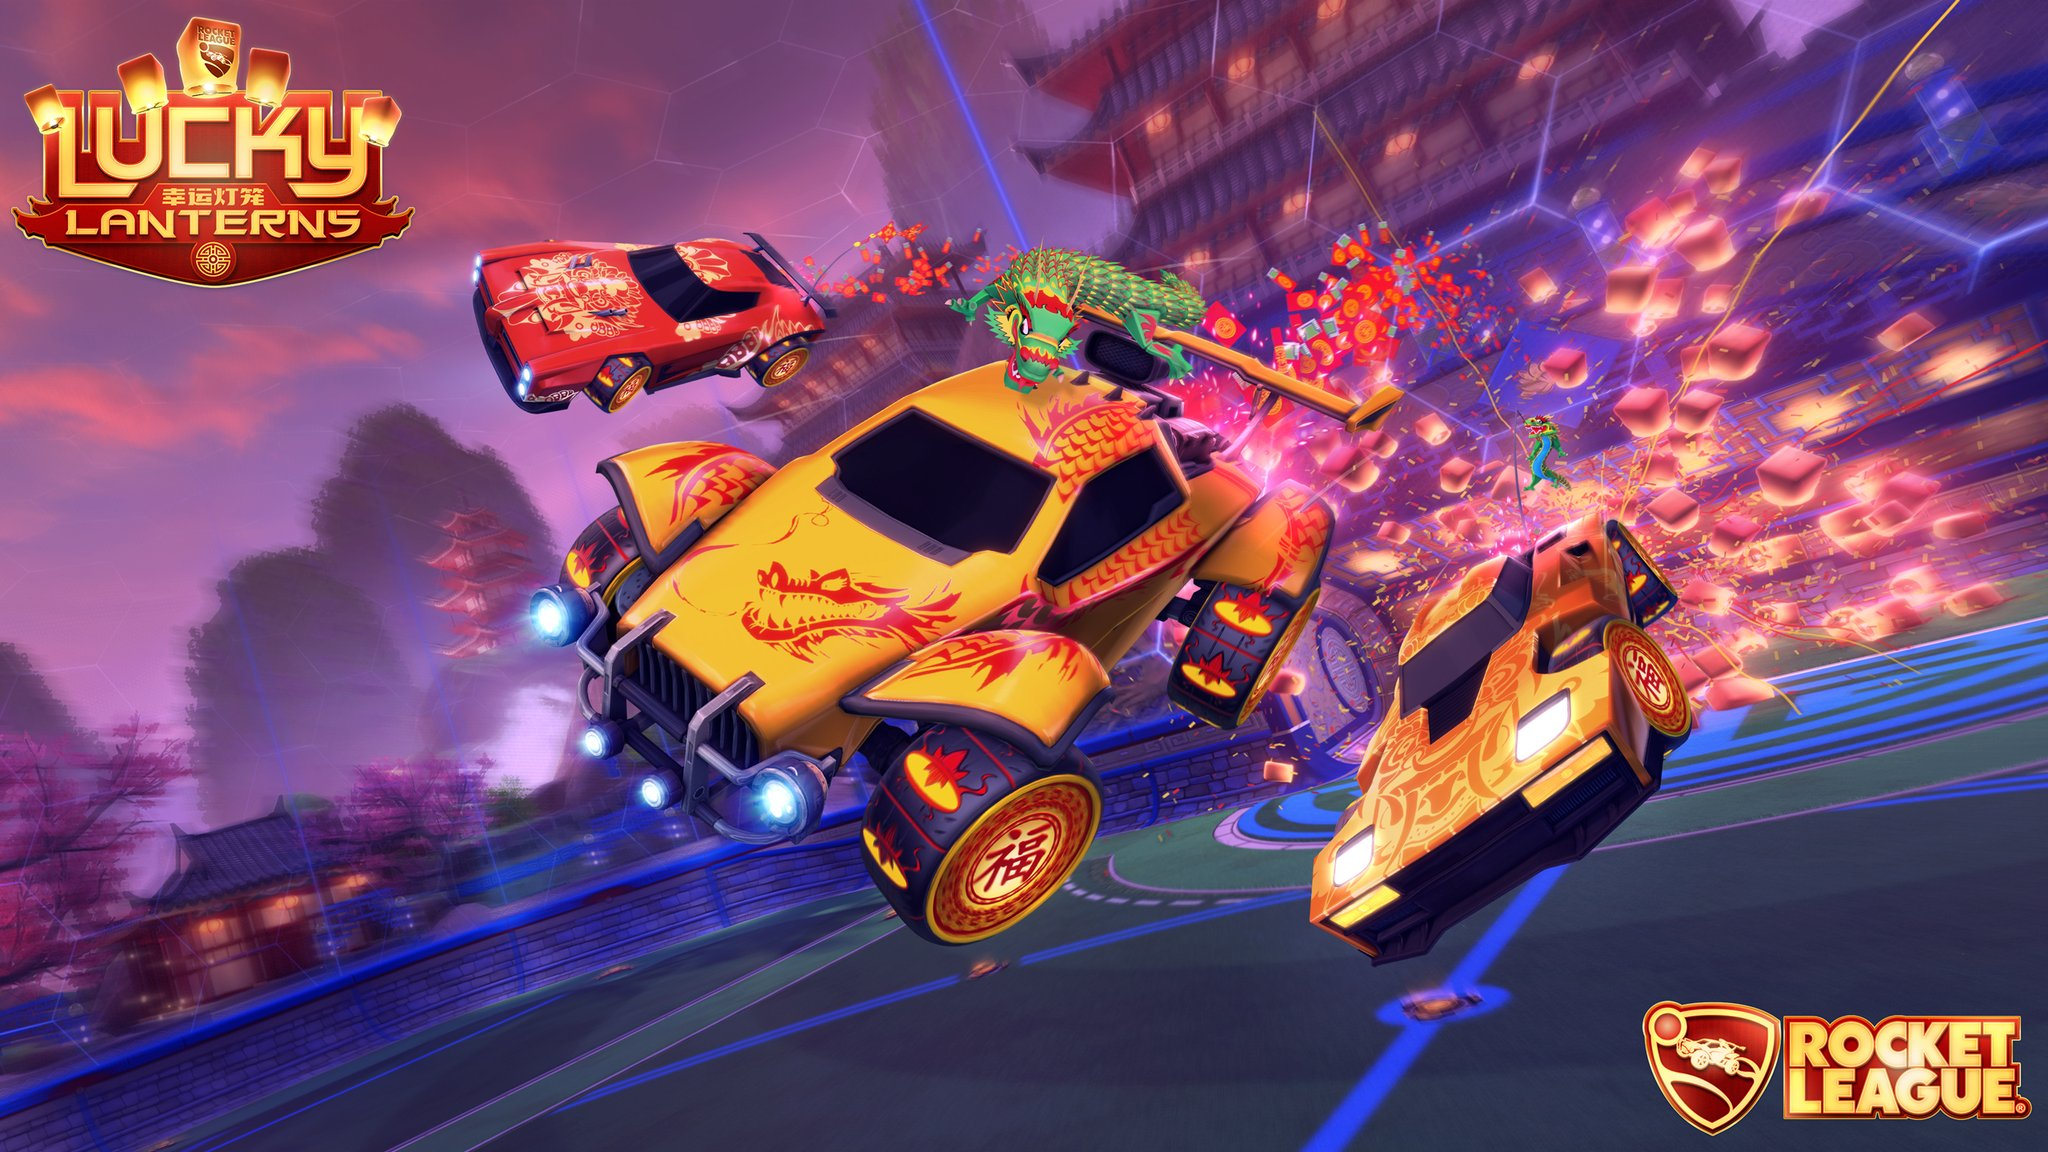 Rocket League is getting a new Lunar New Year event, Lucky Lanterns